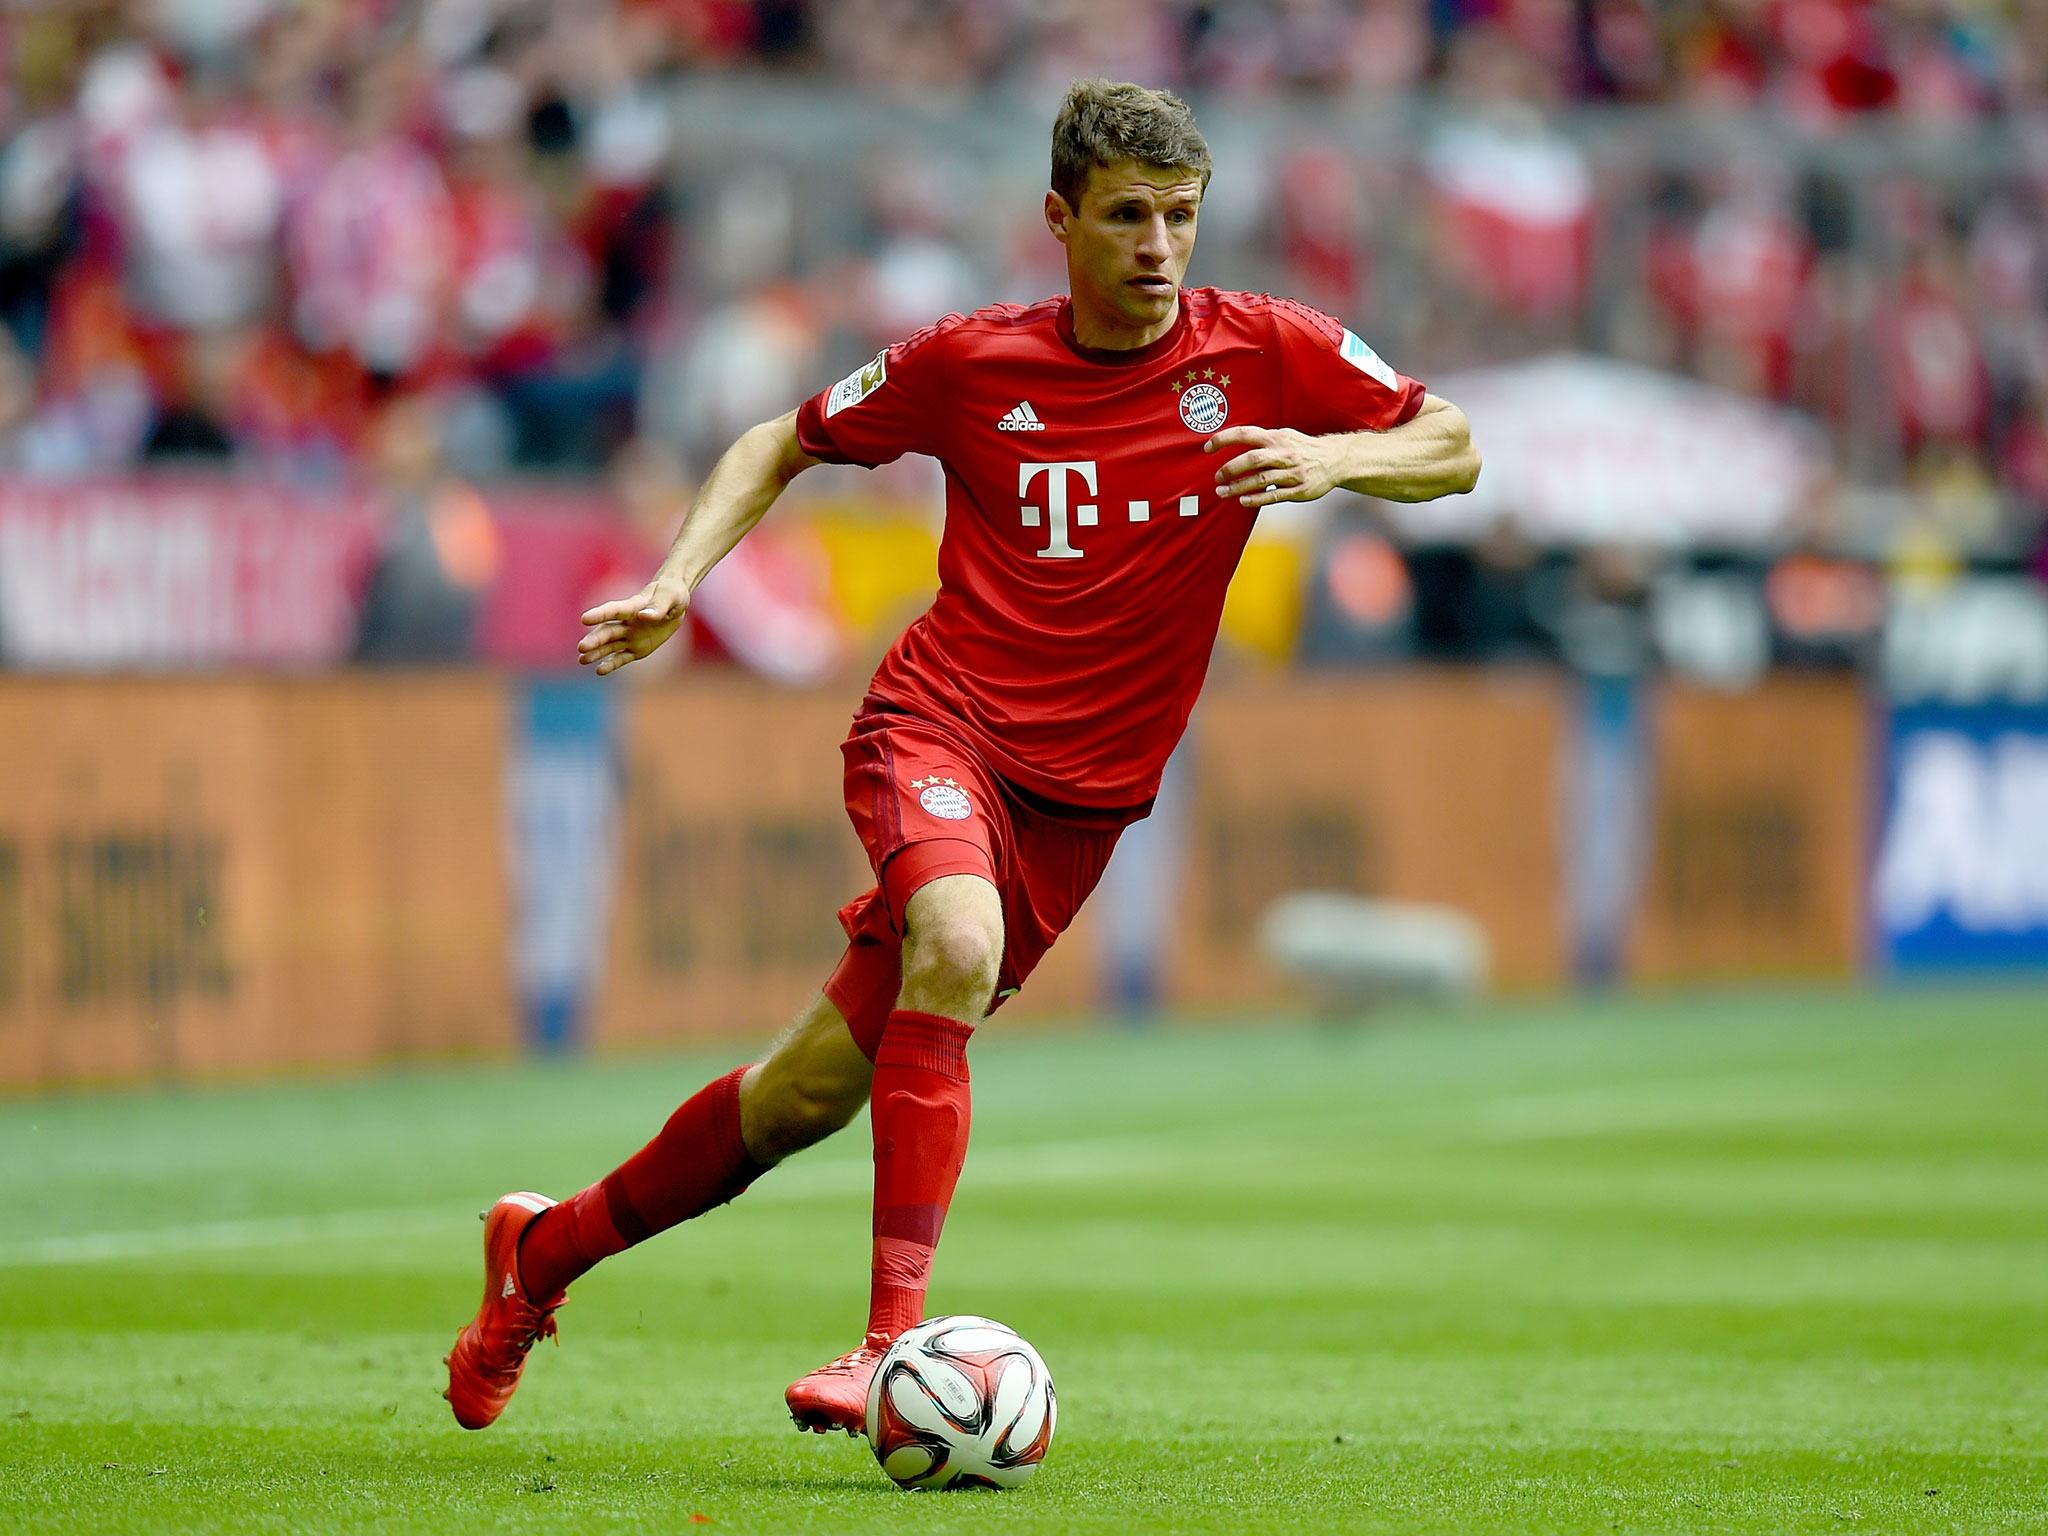 EXCLUSIVE: Thomas Muller planning to leave Bayern in January, Manchester United interested